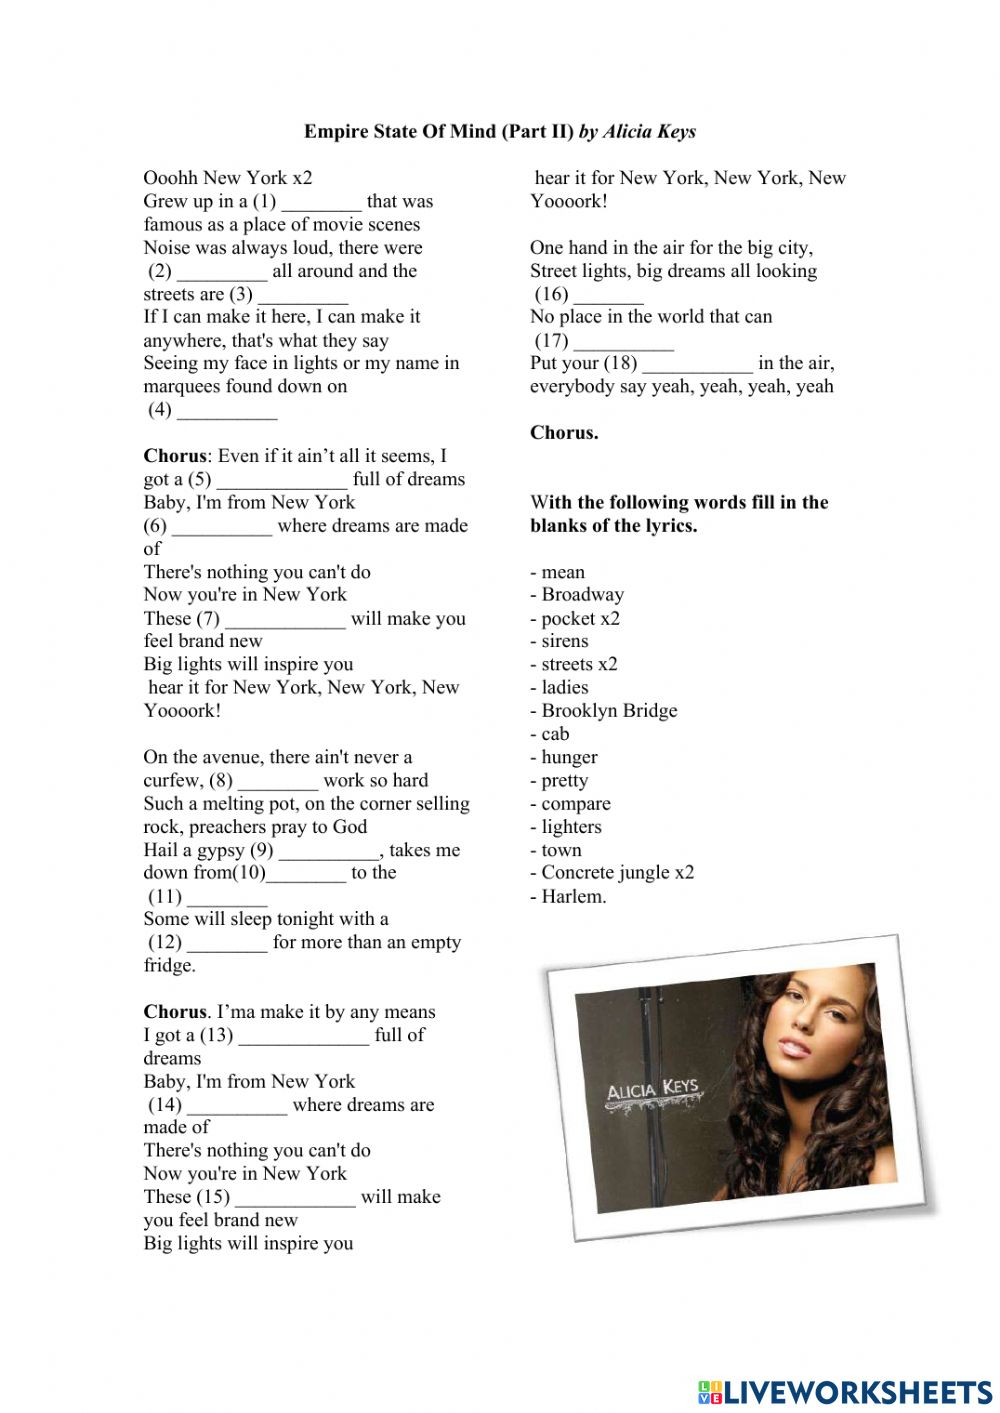 Empire State of Mind - Alicia Keys worksheet